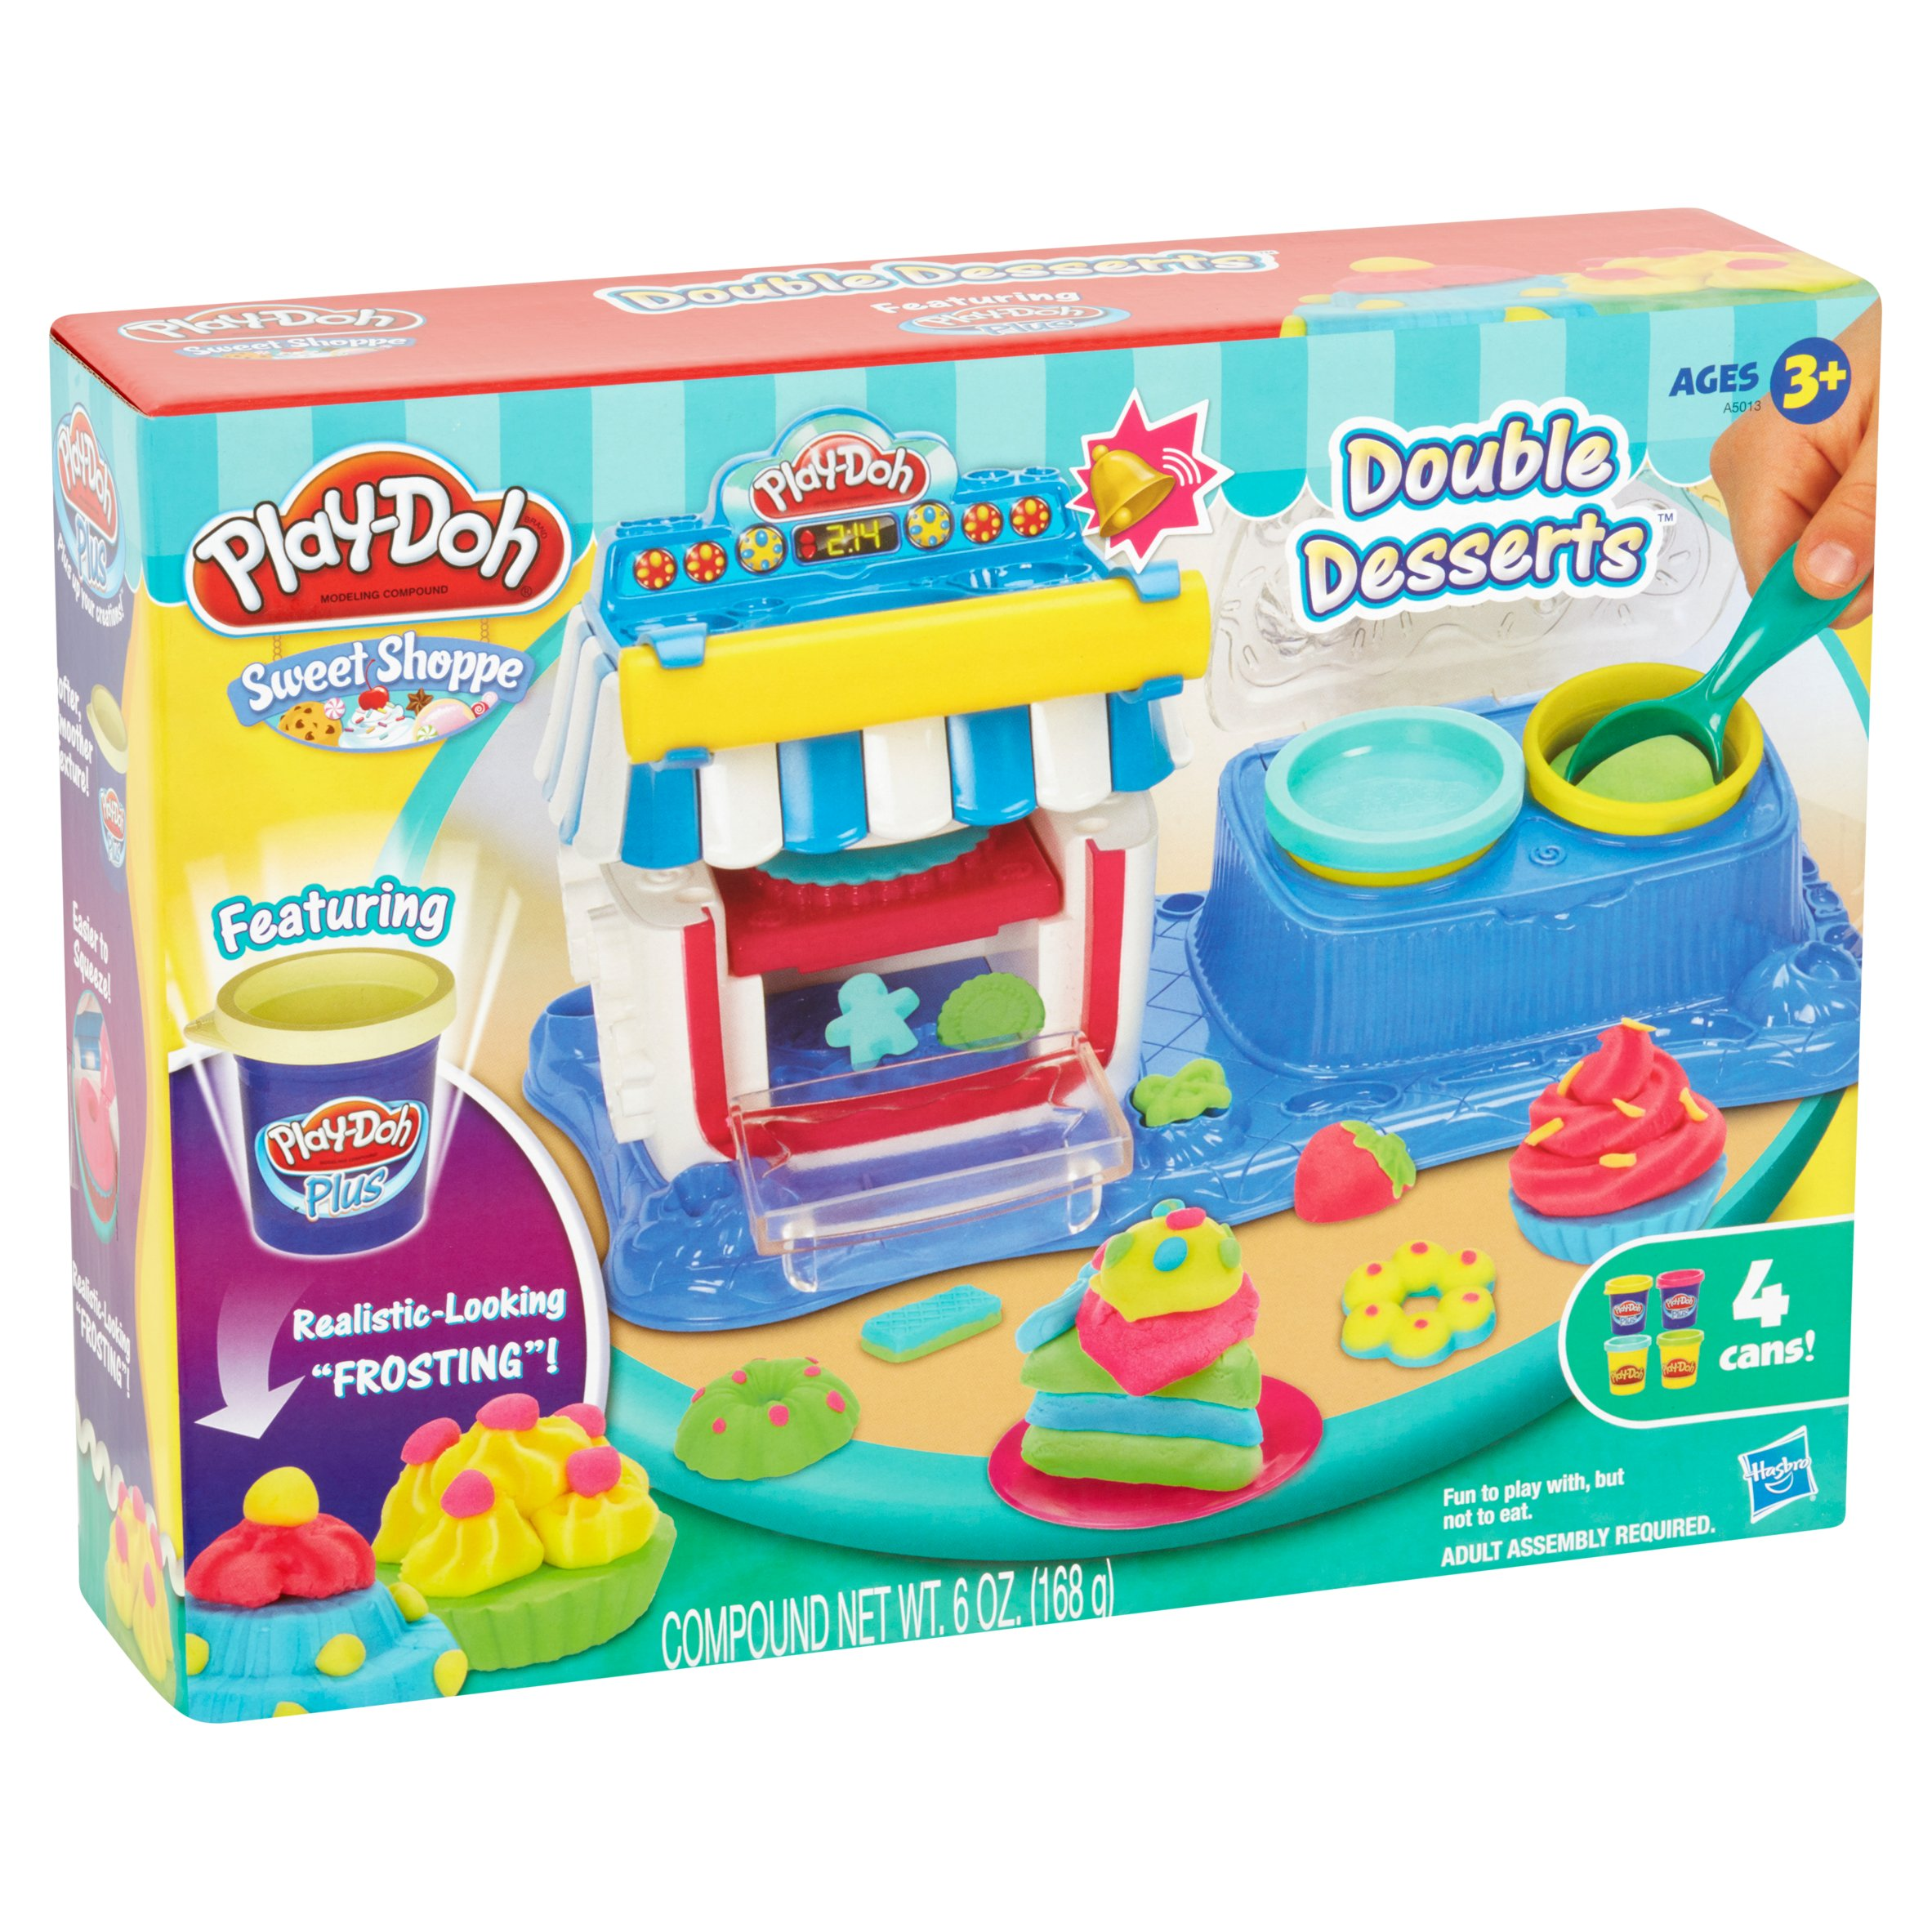 Play-Doh Sweet Shoppe Double Desserts Food Set